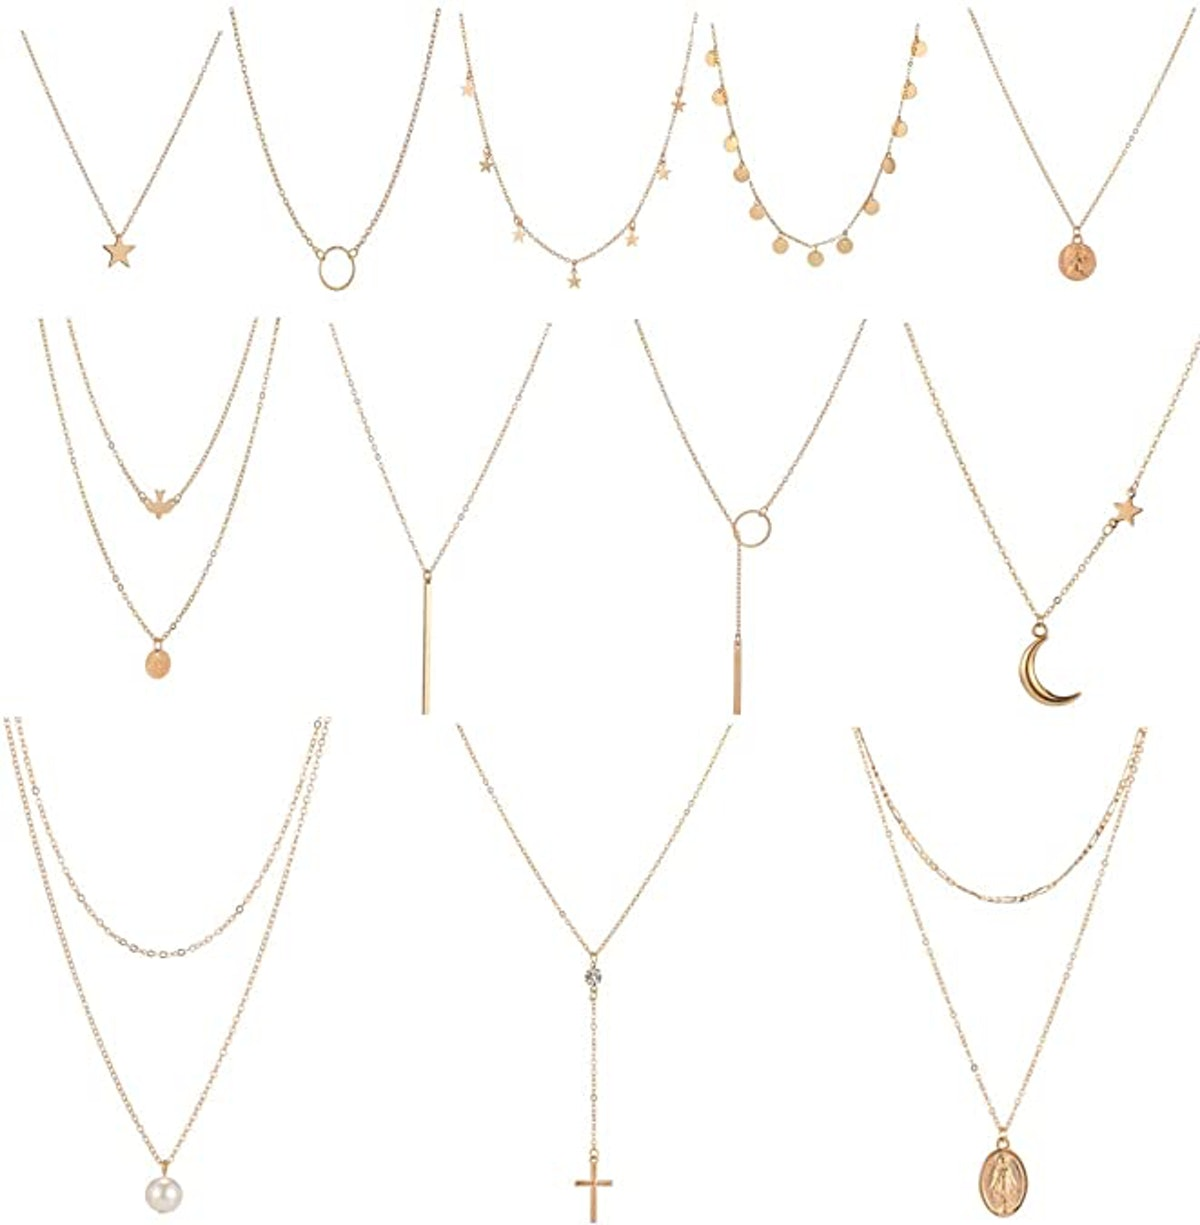 Dremcoue Layered Choker Necklace (12-Piece)